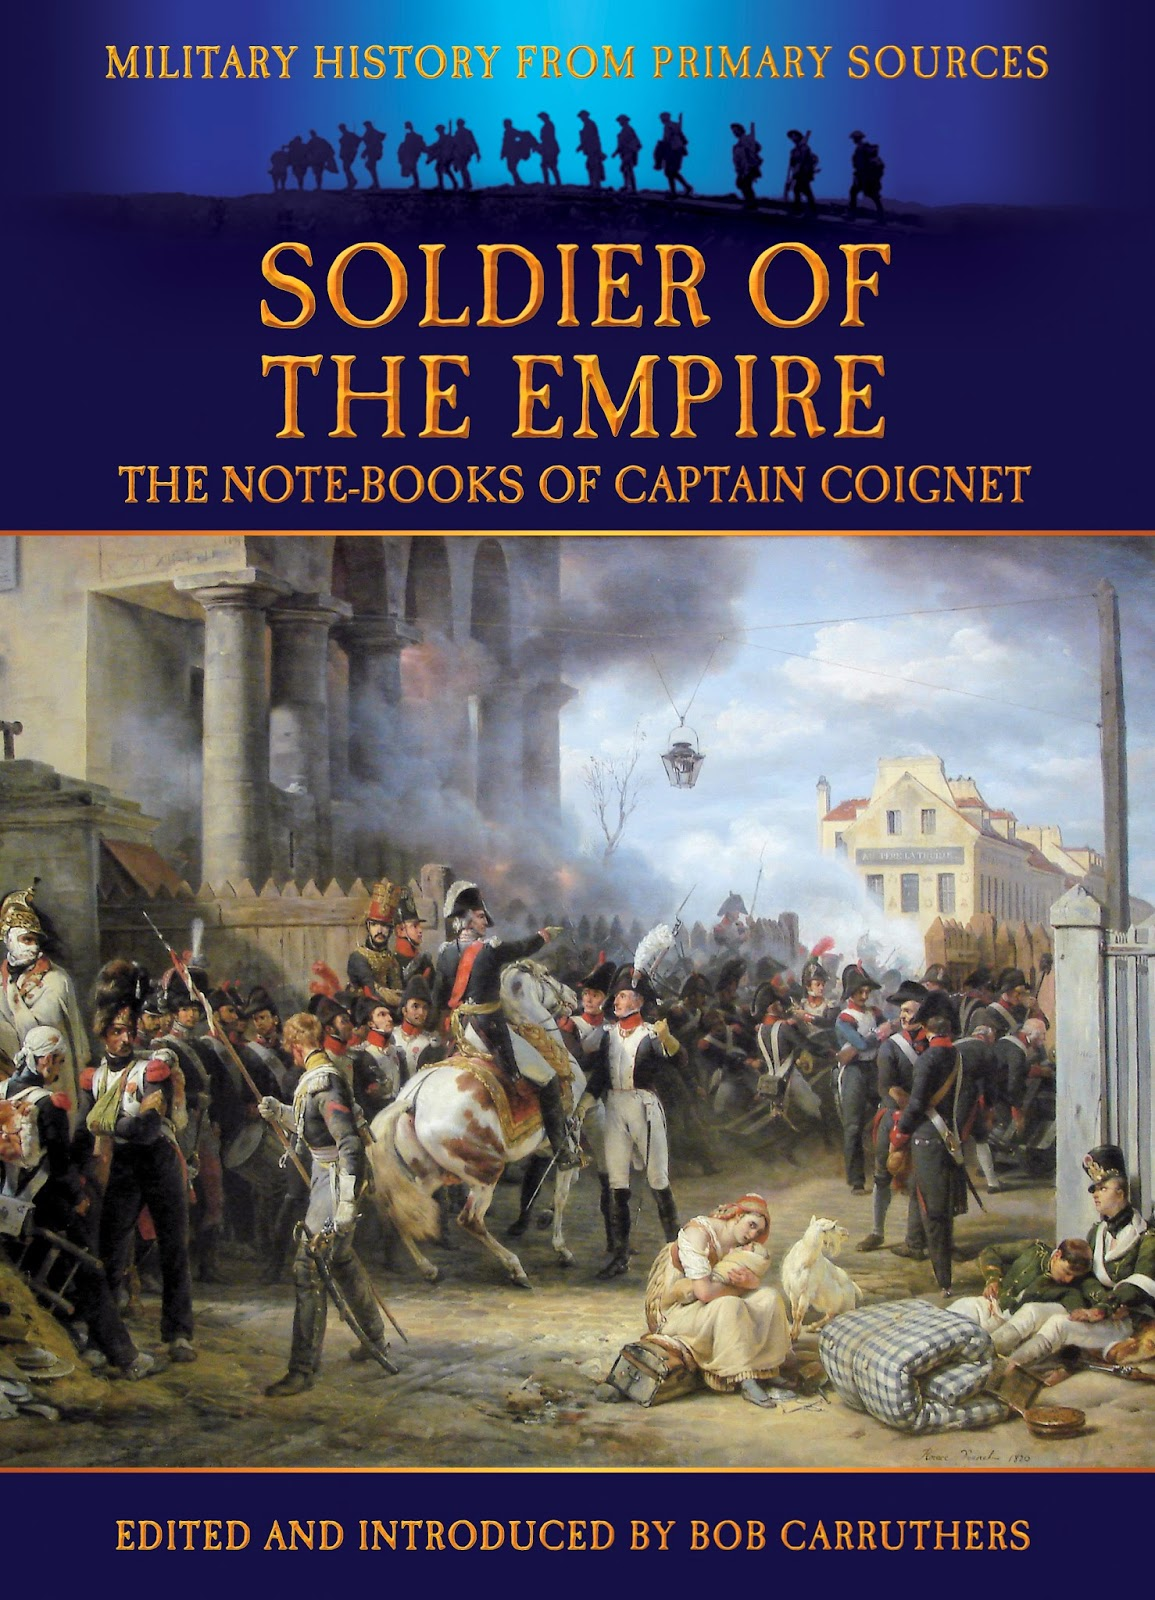 an introduction to the life of napoleon bonaparte Kids learn about the biography of napoleon bonaparte, the first emperor of  france who conquered much of europe before being defeated and sent into exile.